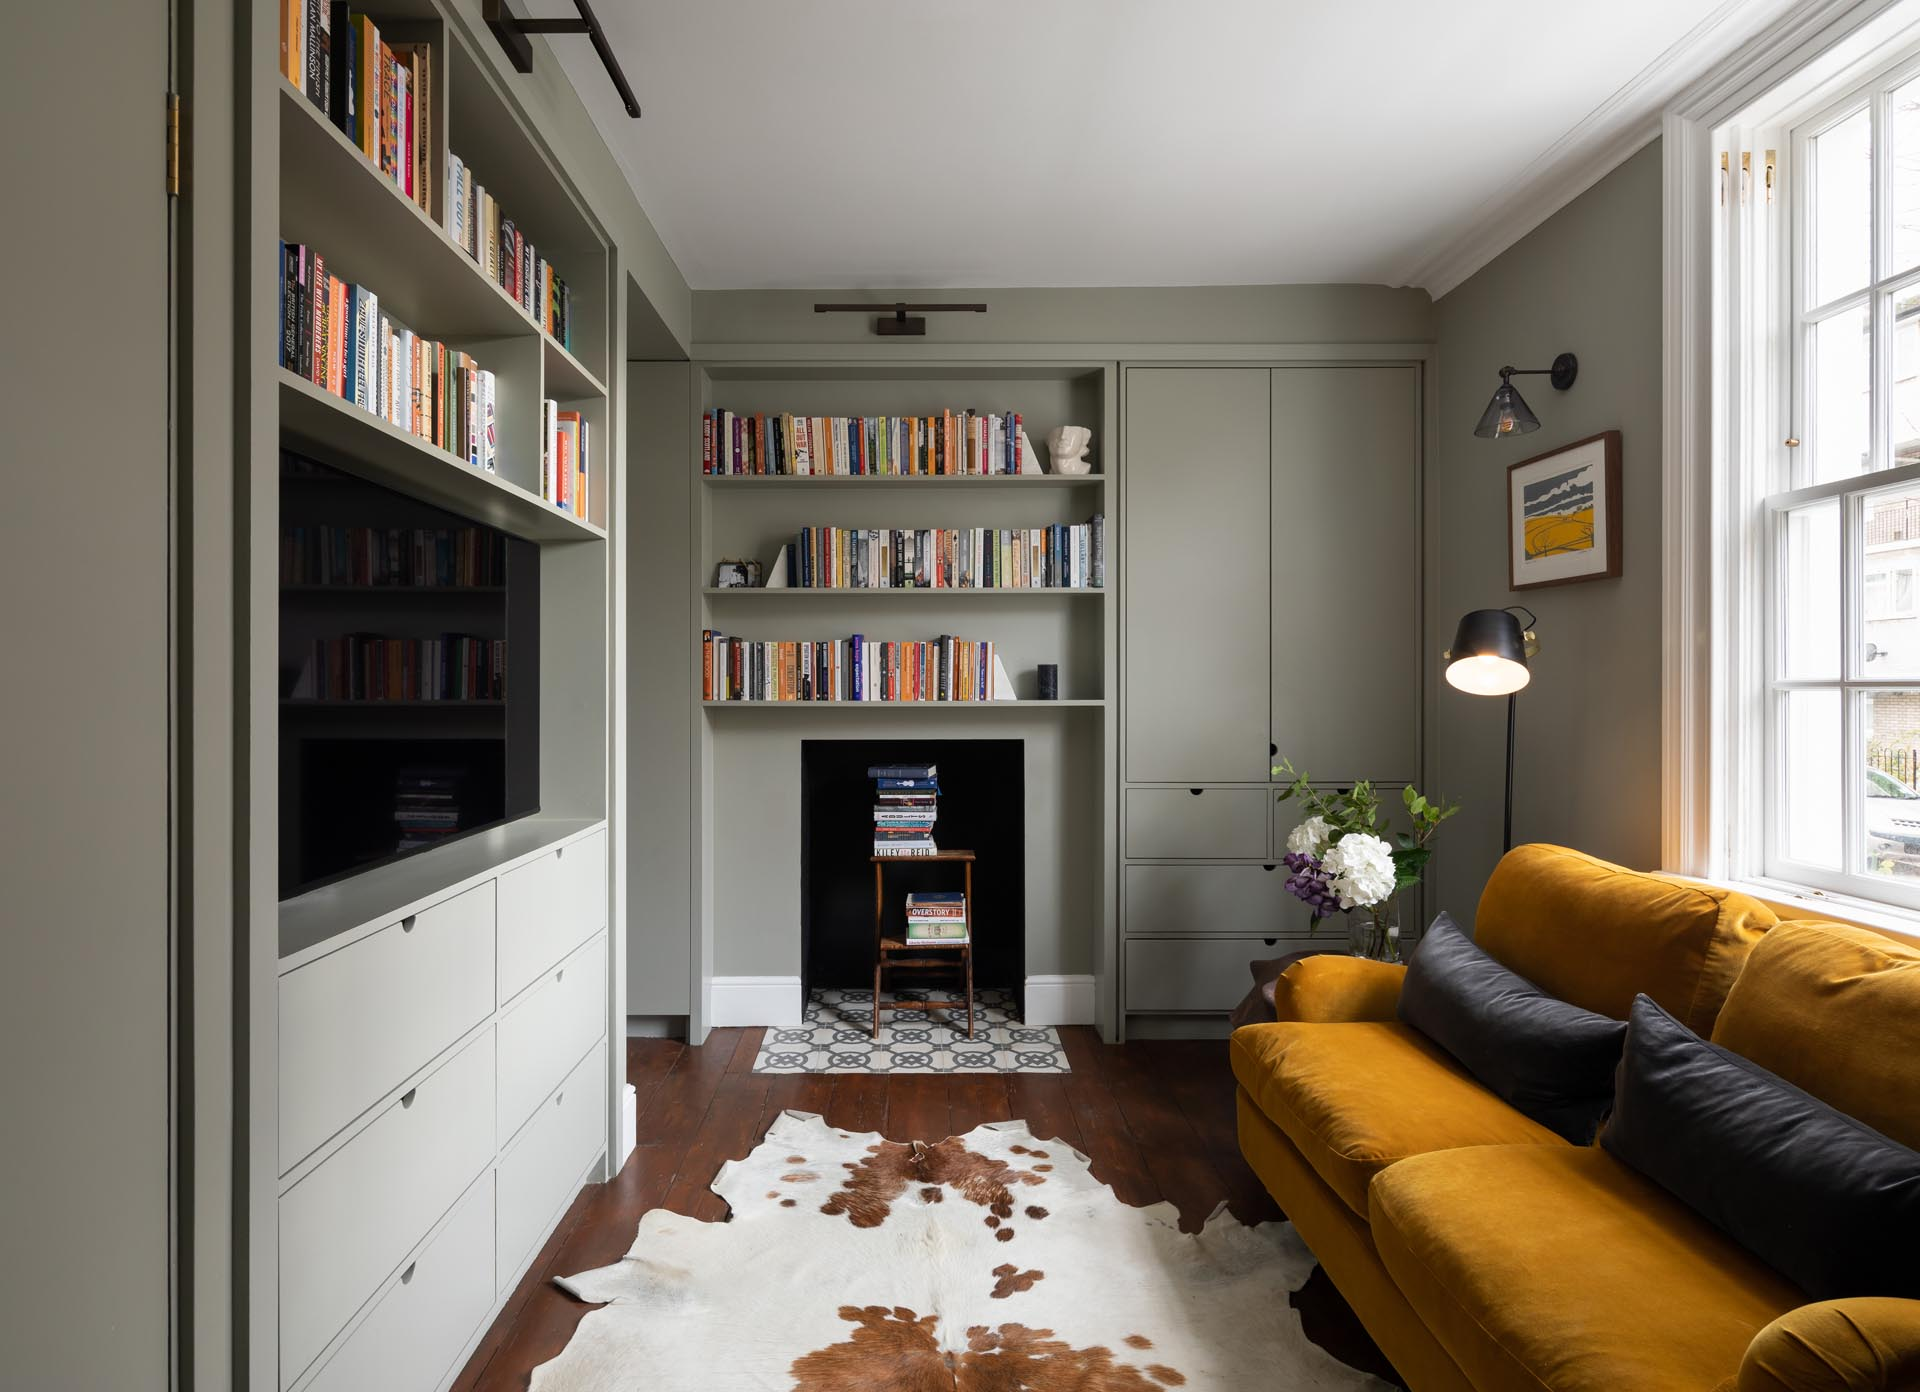 A remodeled living room with gray and white shelving.